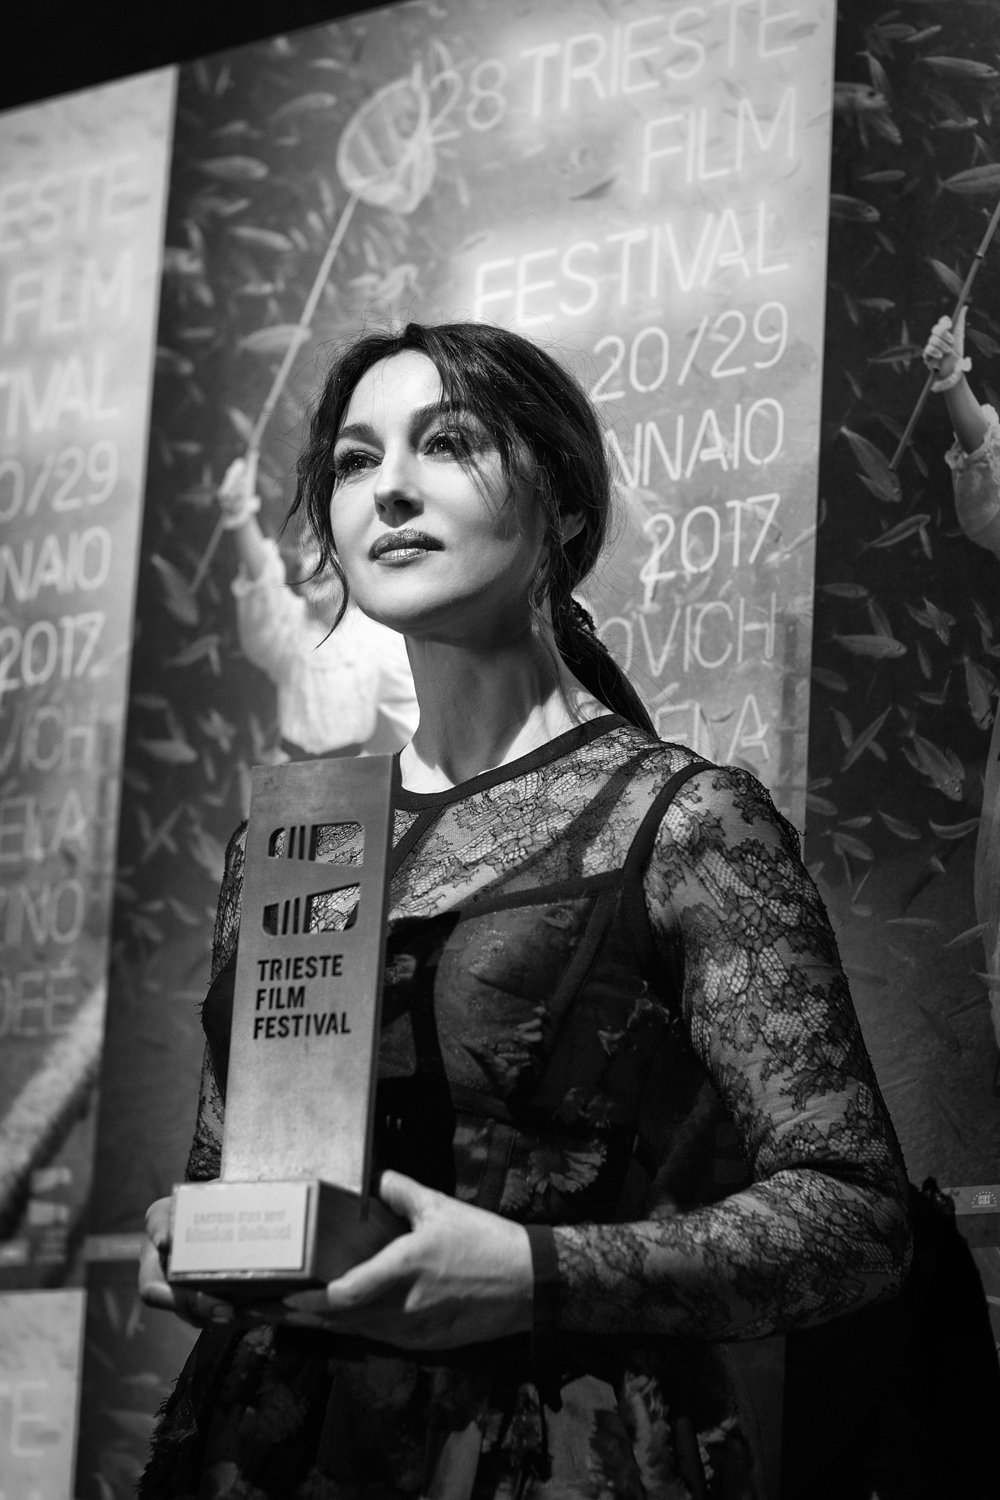 Monica Bellucci for Filmfestival